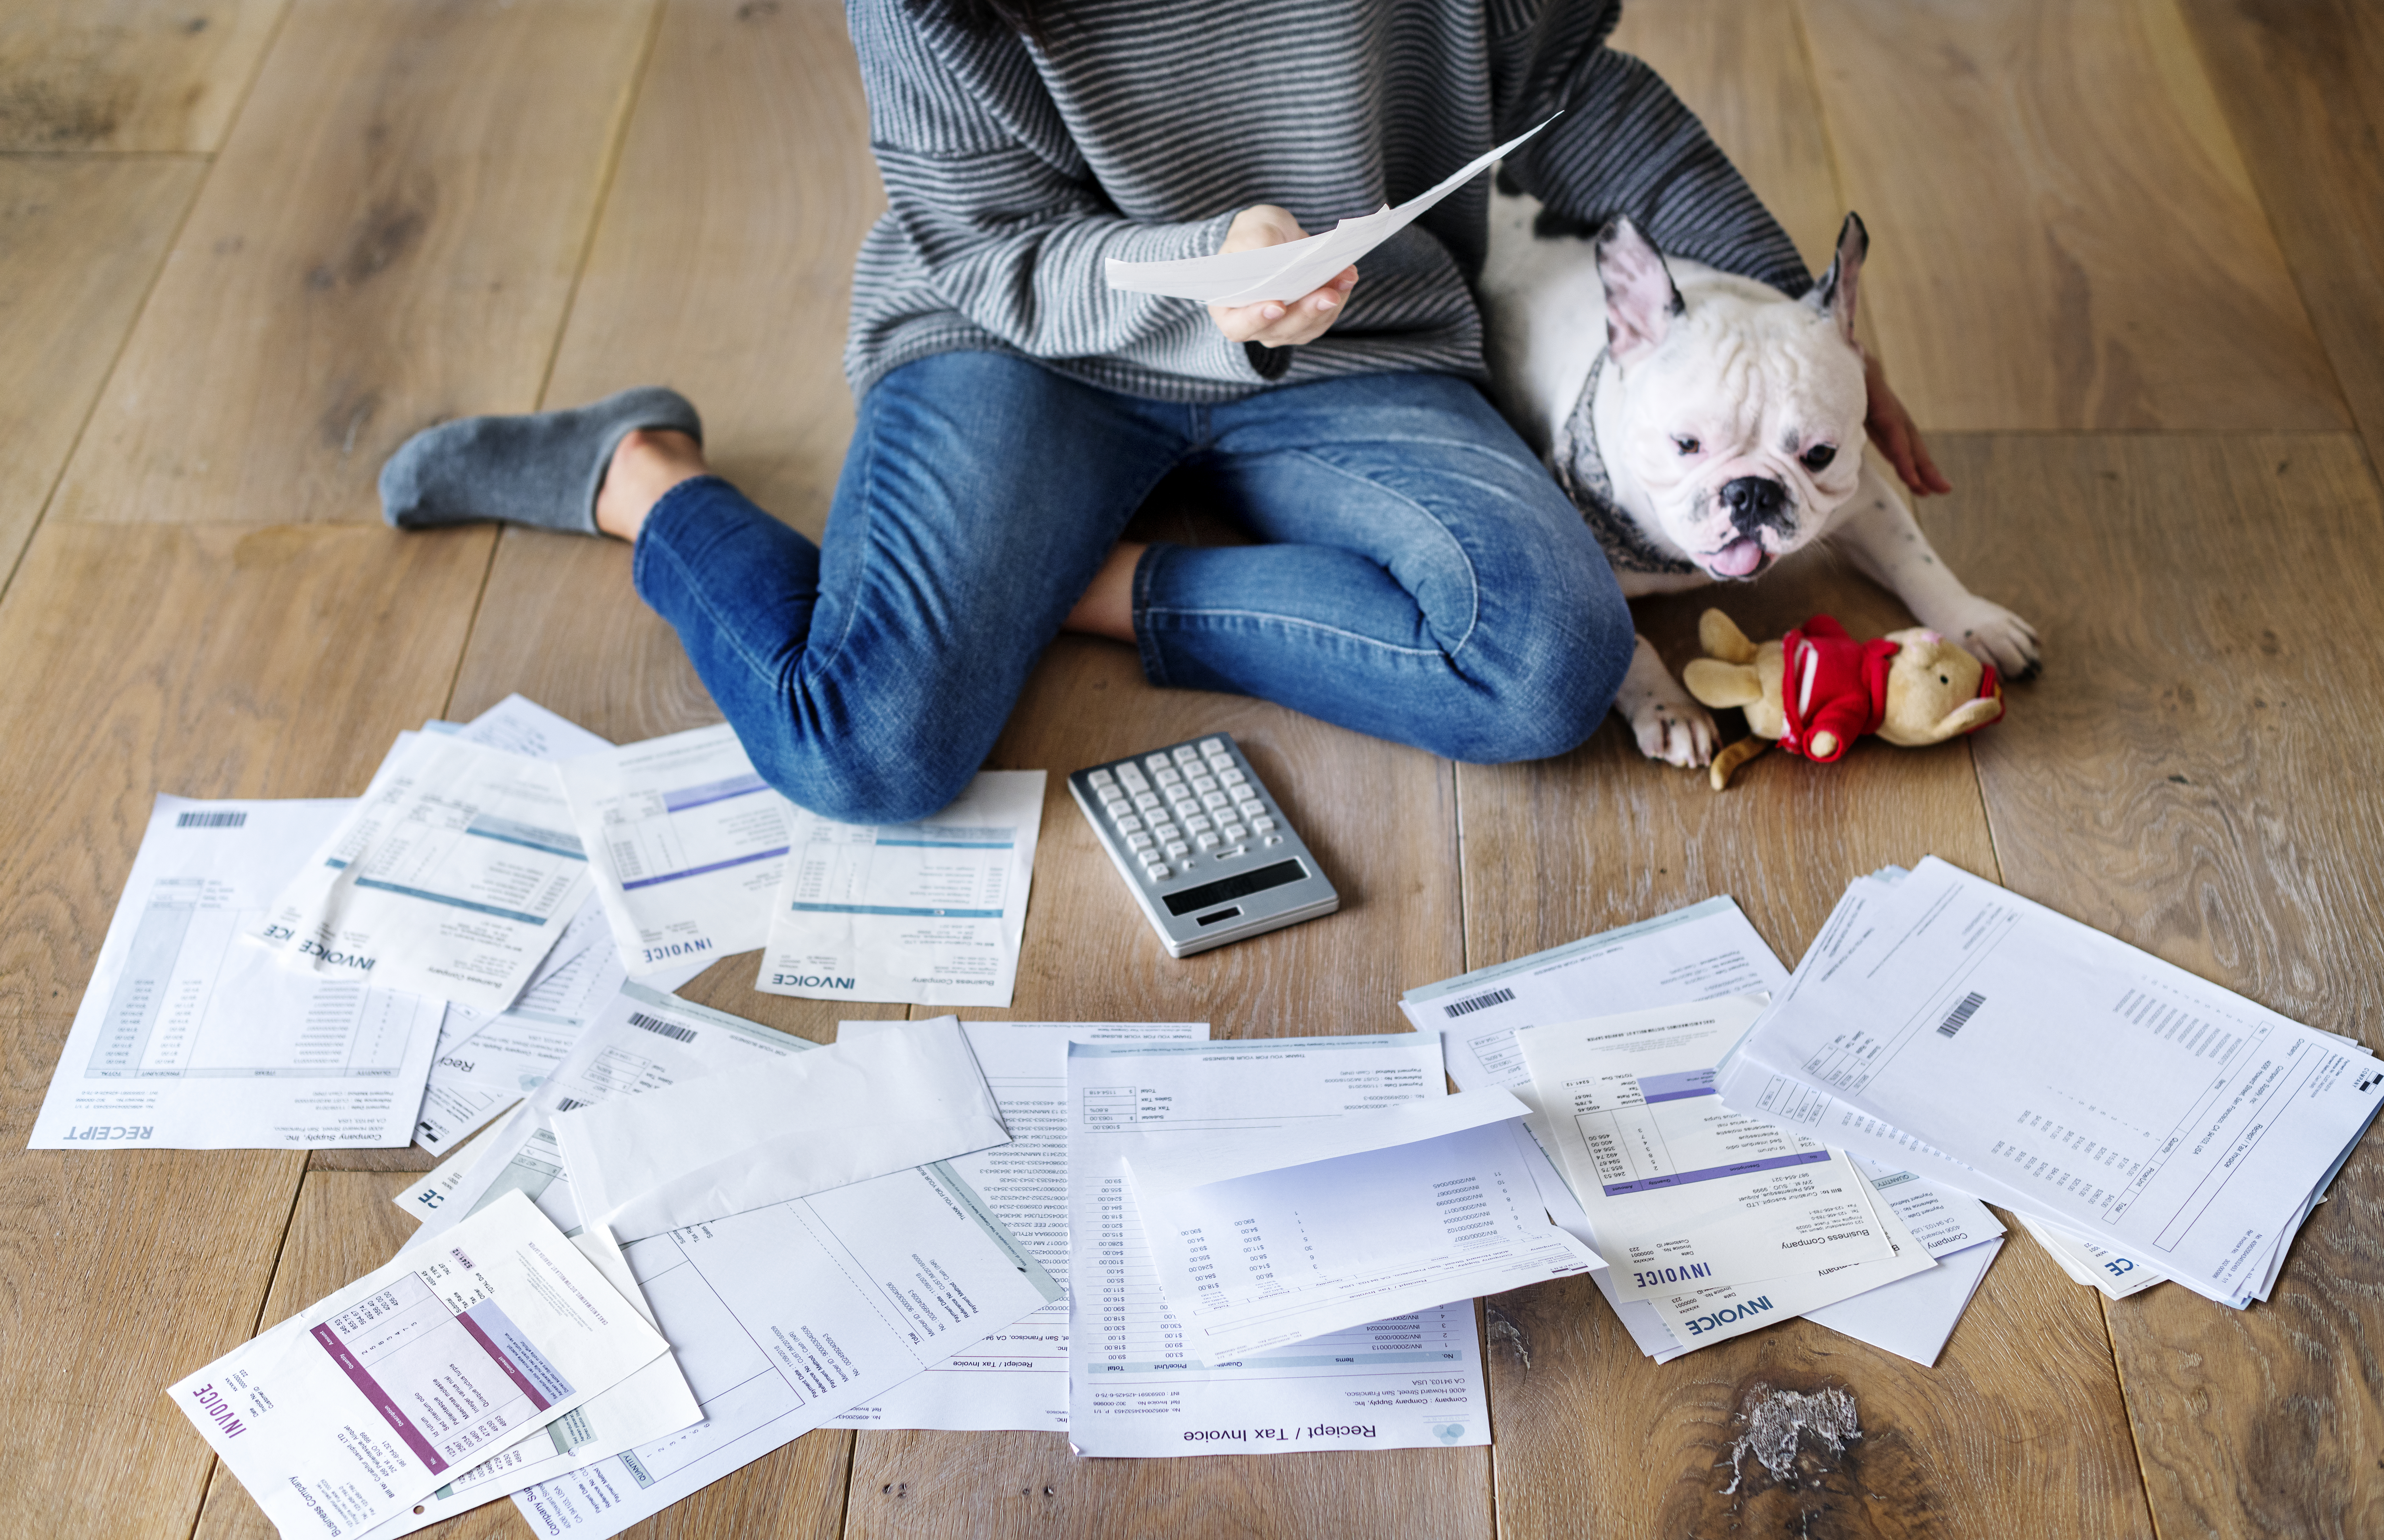 Generic image of person working on their finances